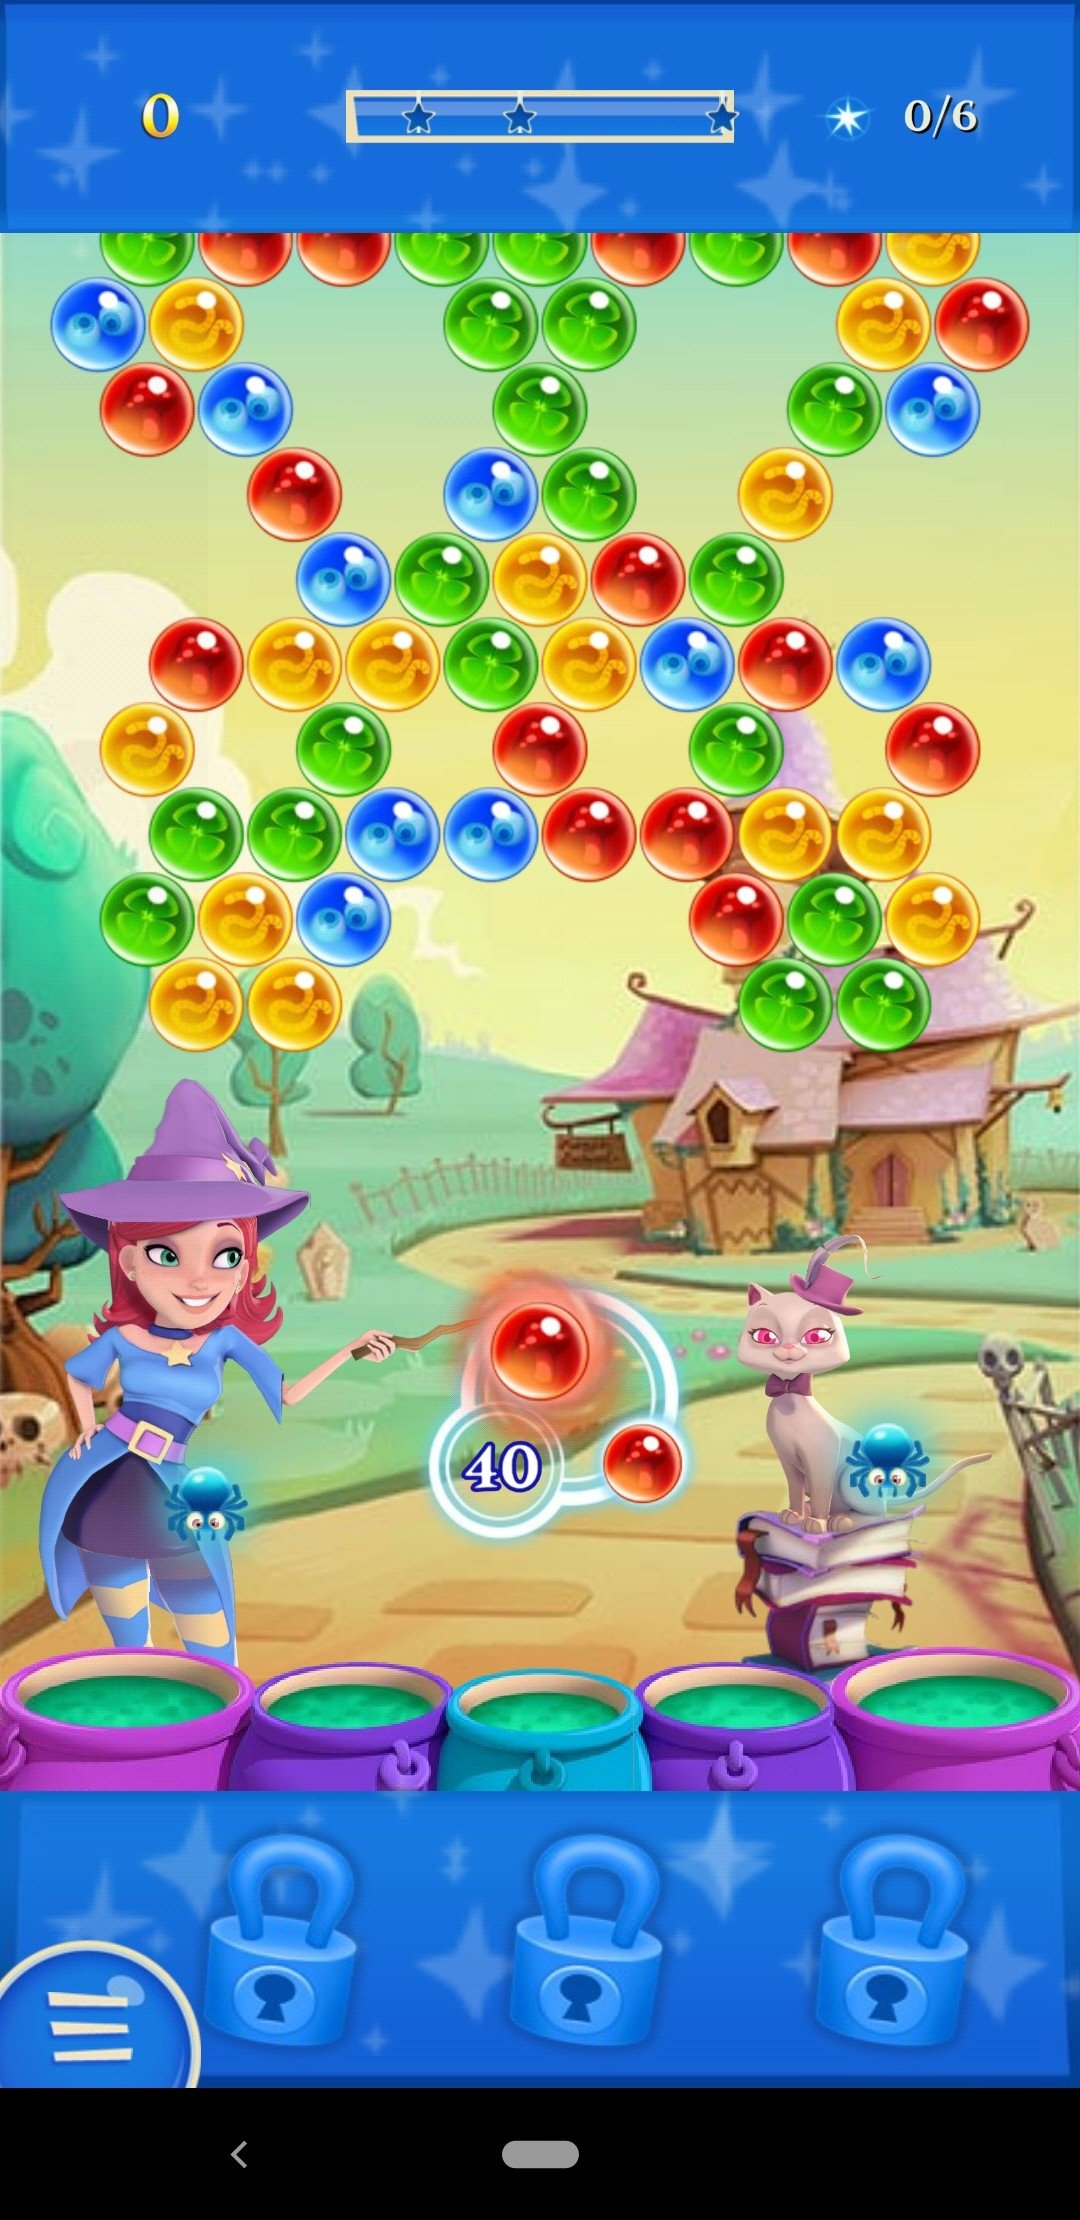 Bubble Witch 2 Saga Android image 5